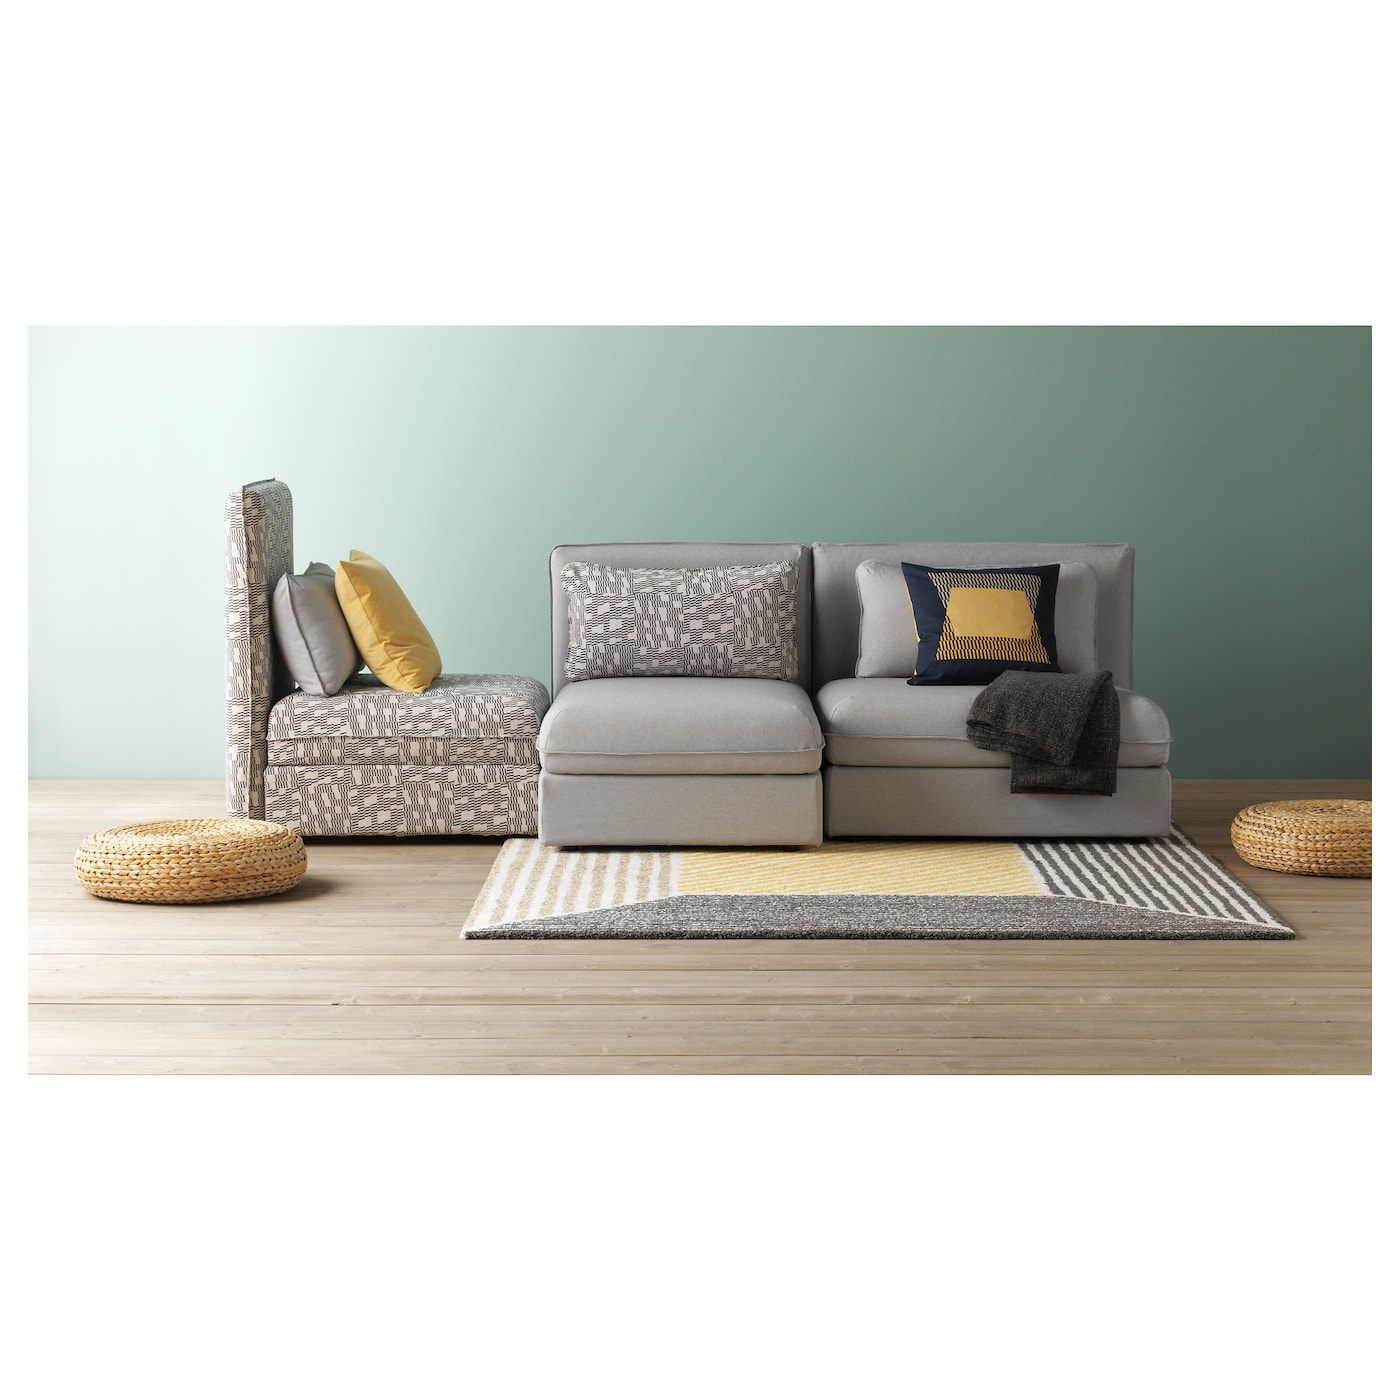 vallentuna canap 3 places couch orrsta gris clair funnarp noir beige ikea. Black Bedroom Furniture Sets. Home Design Ideas